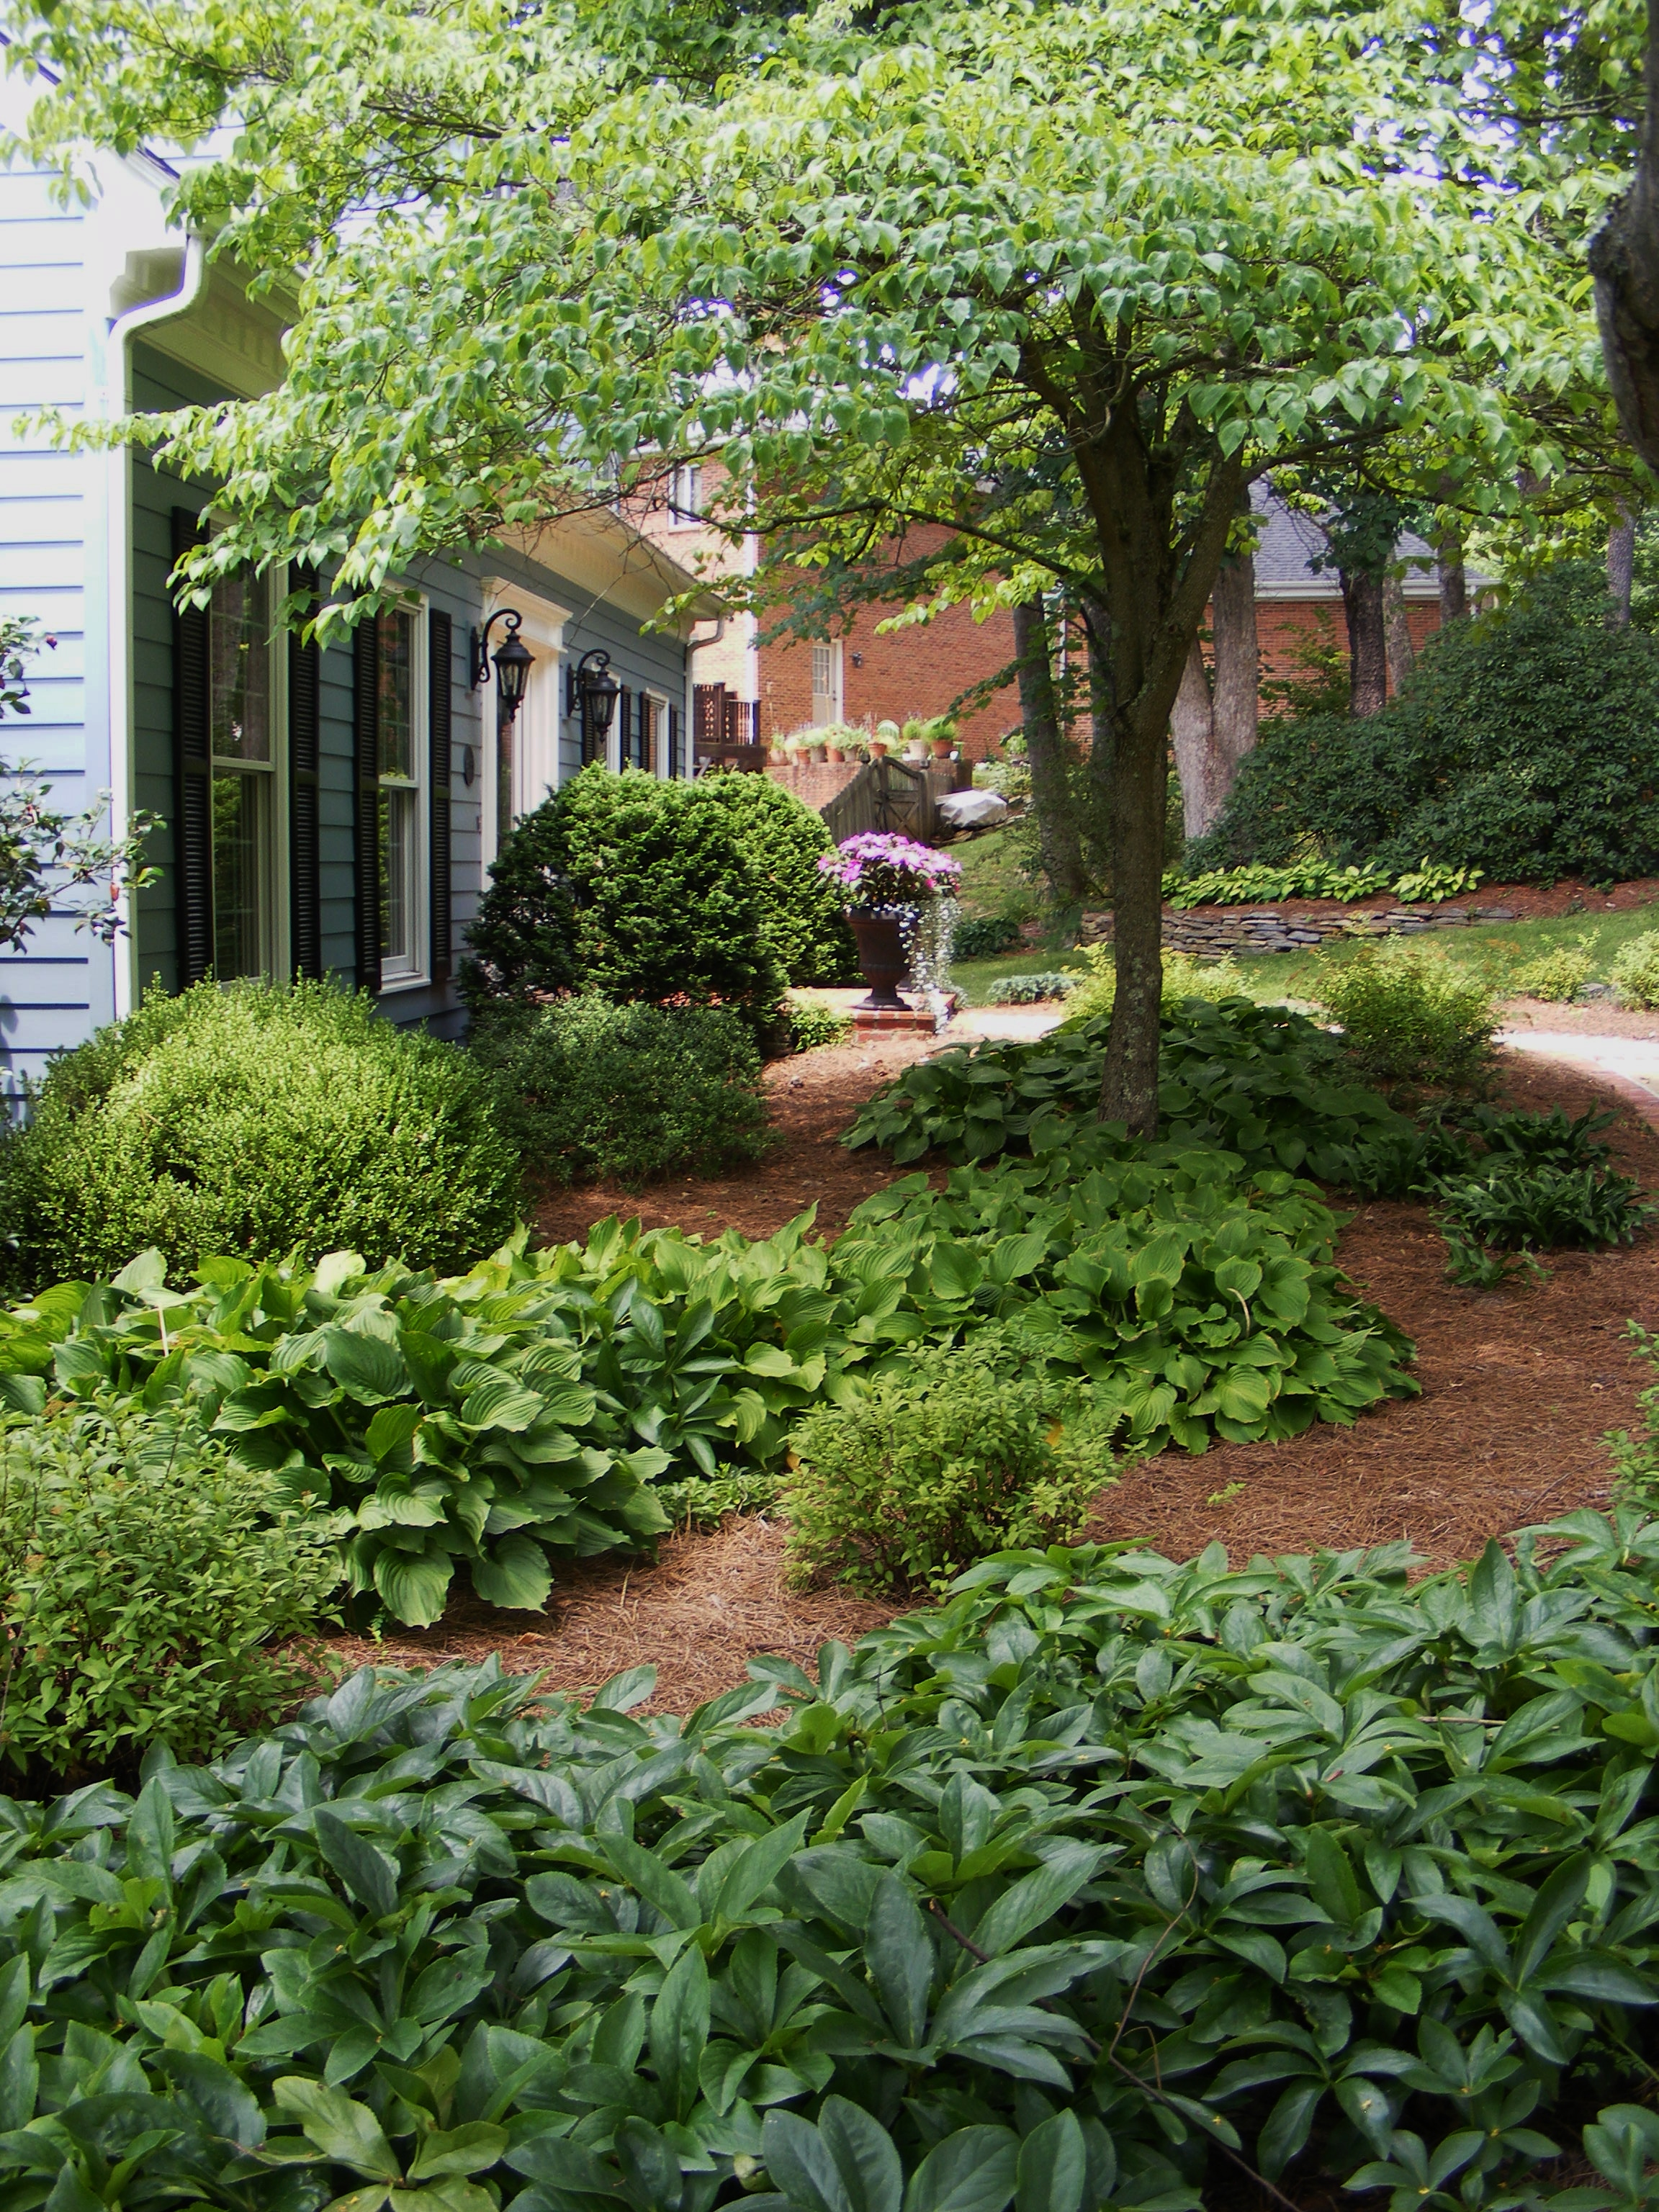 Hostas and hellebores